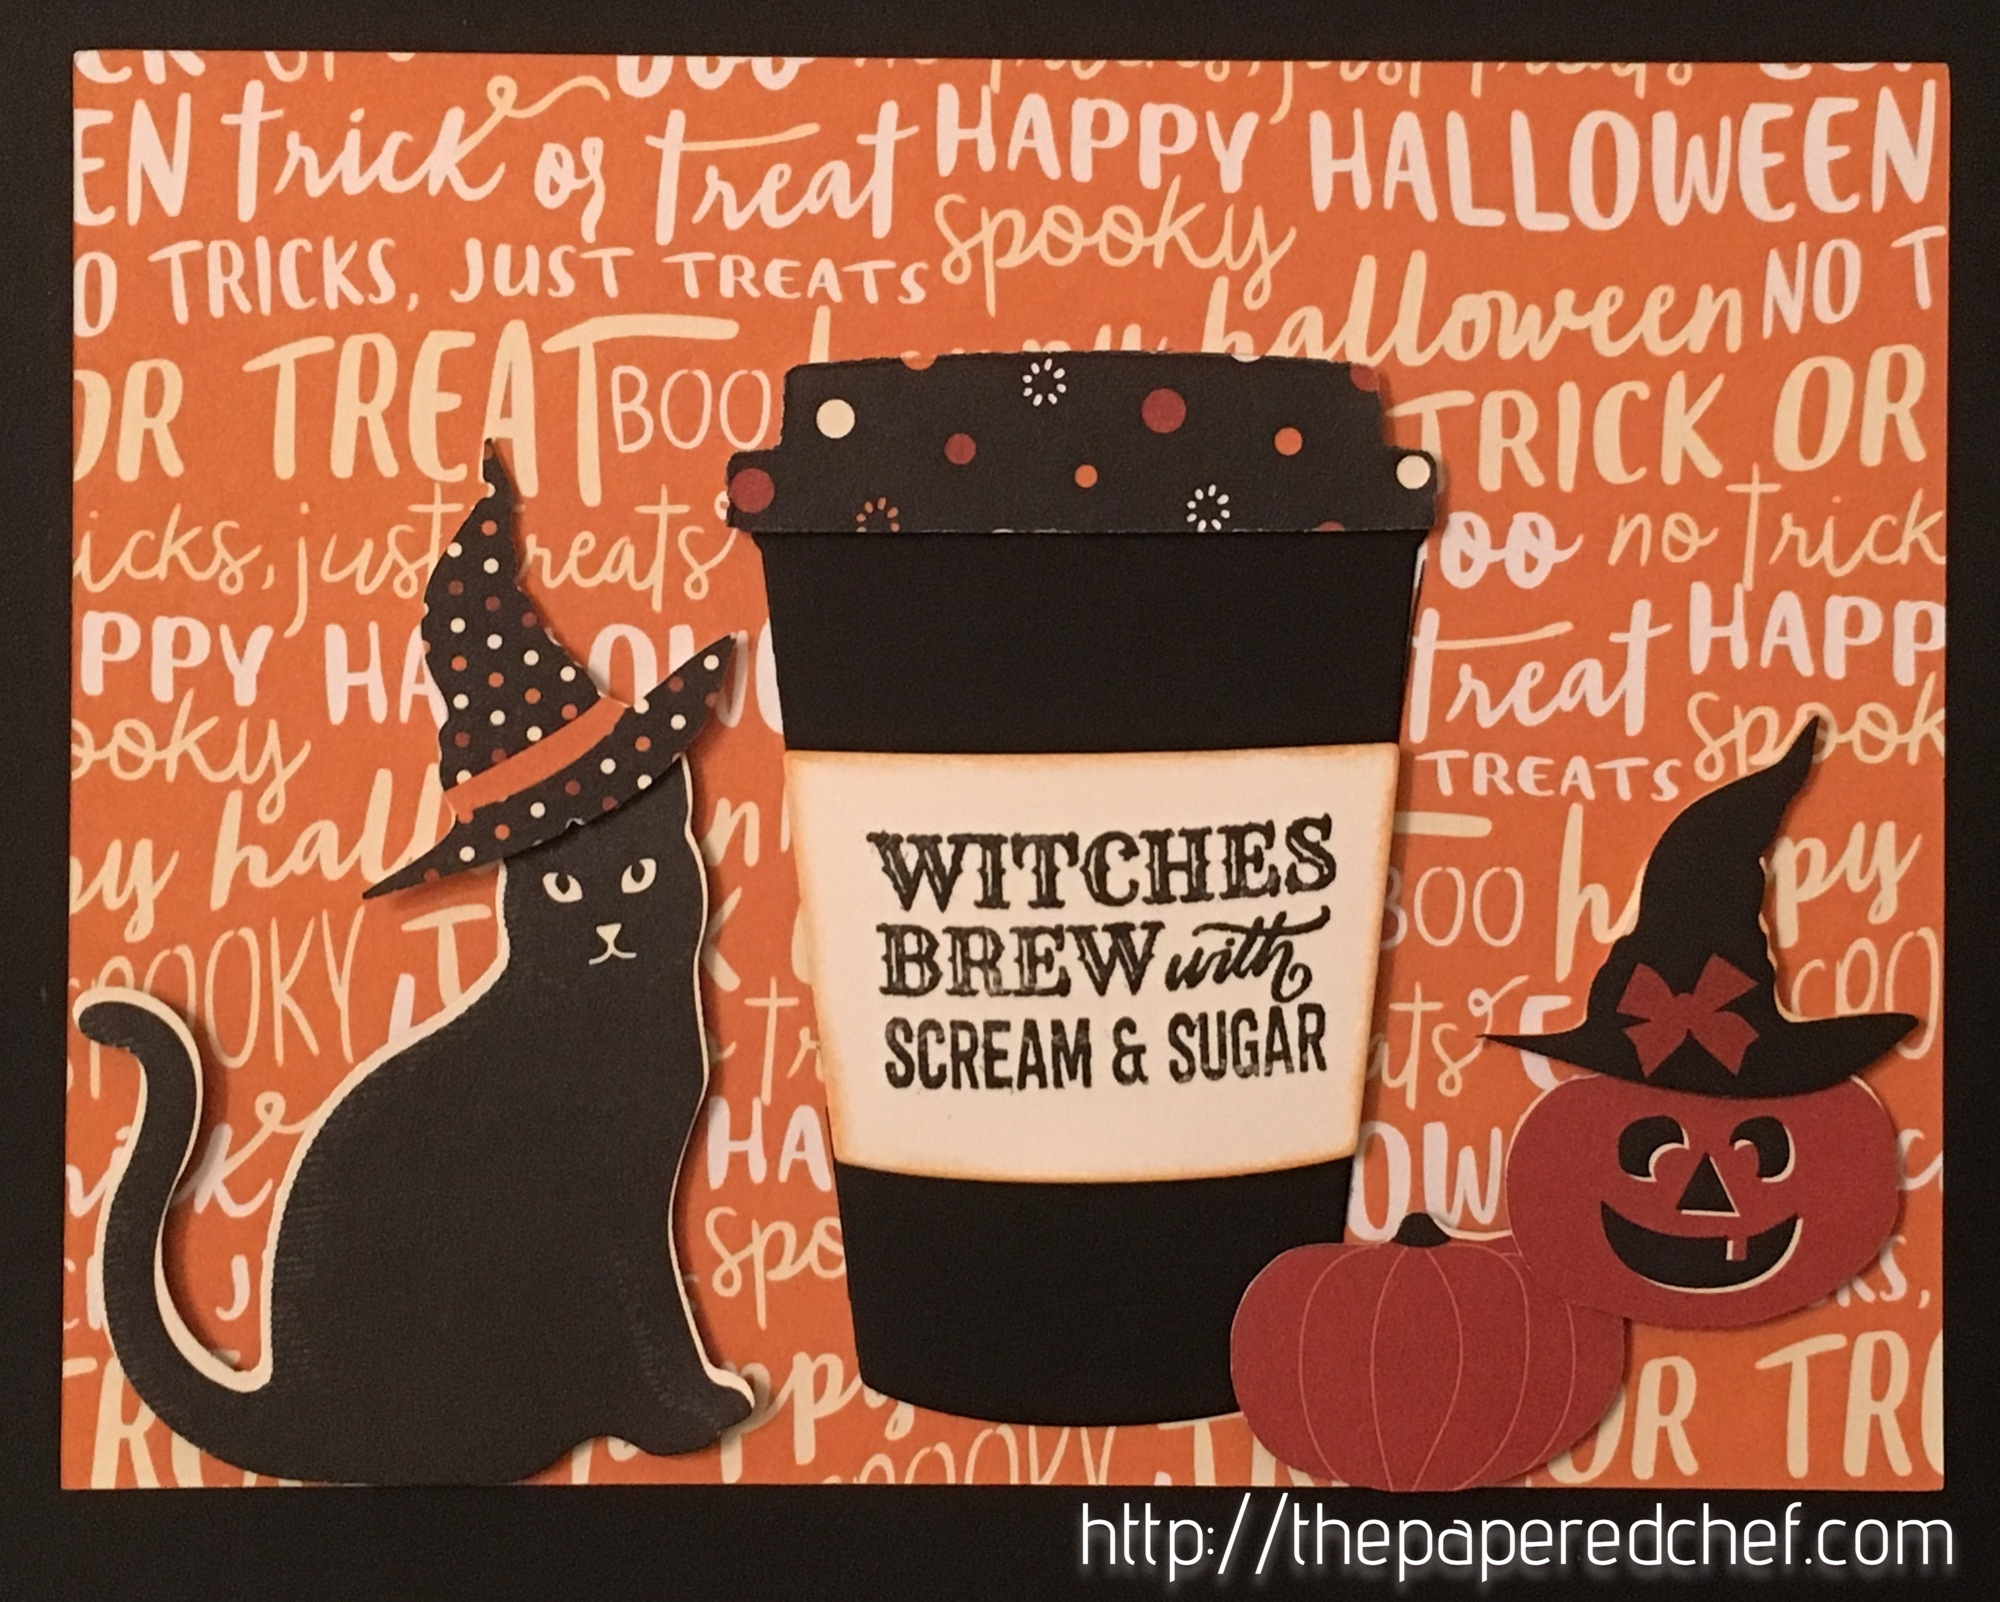 Witches Brew with Scream & Sugar Card